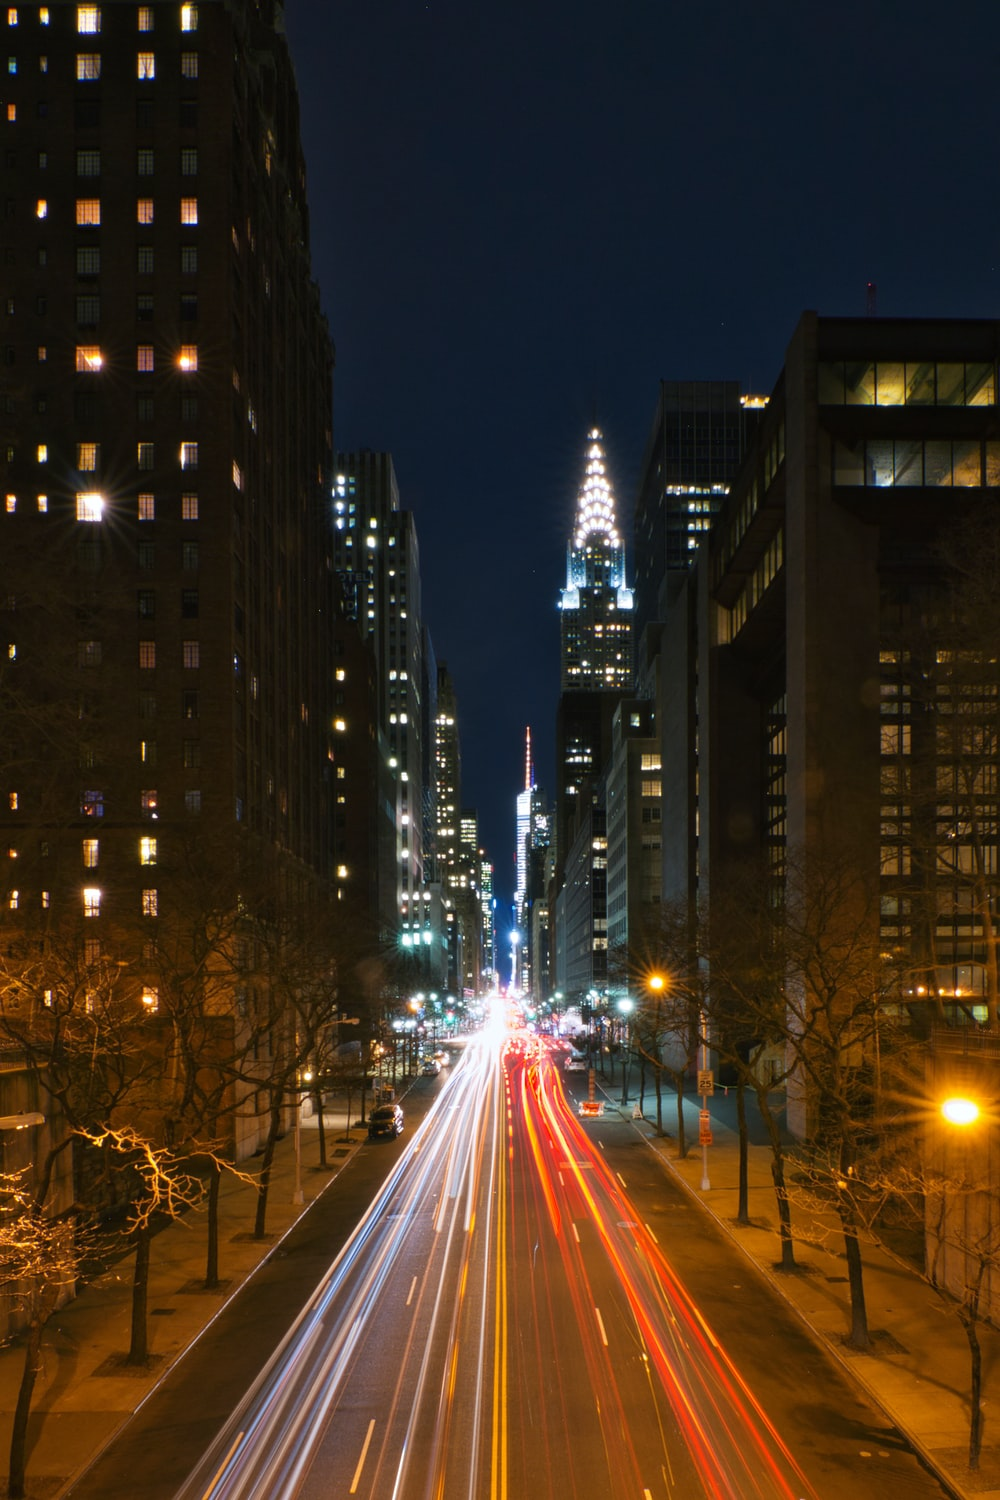 cars on road between high rise buildings during night time